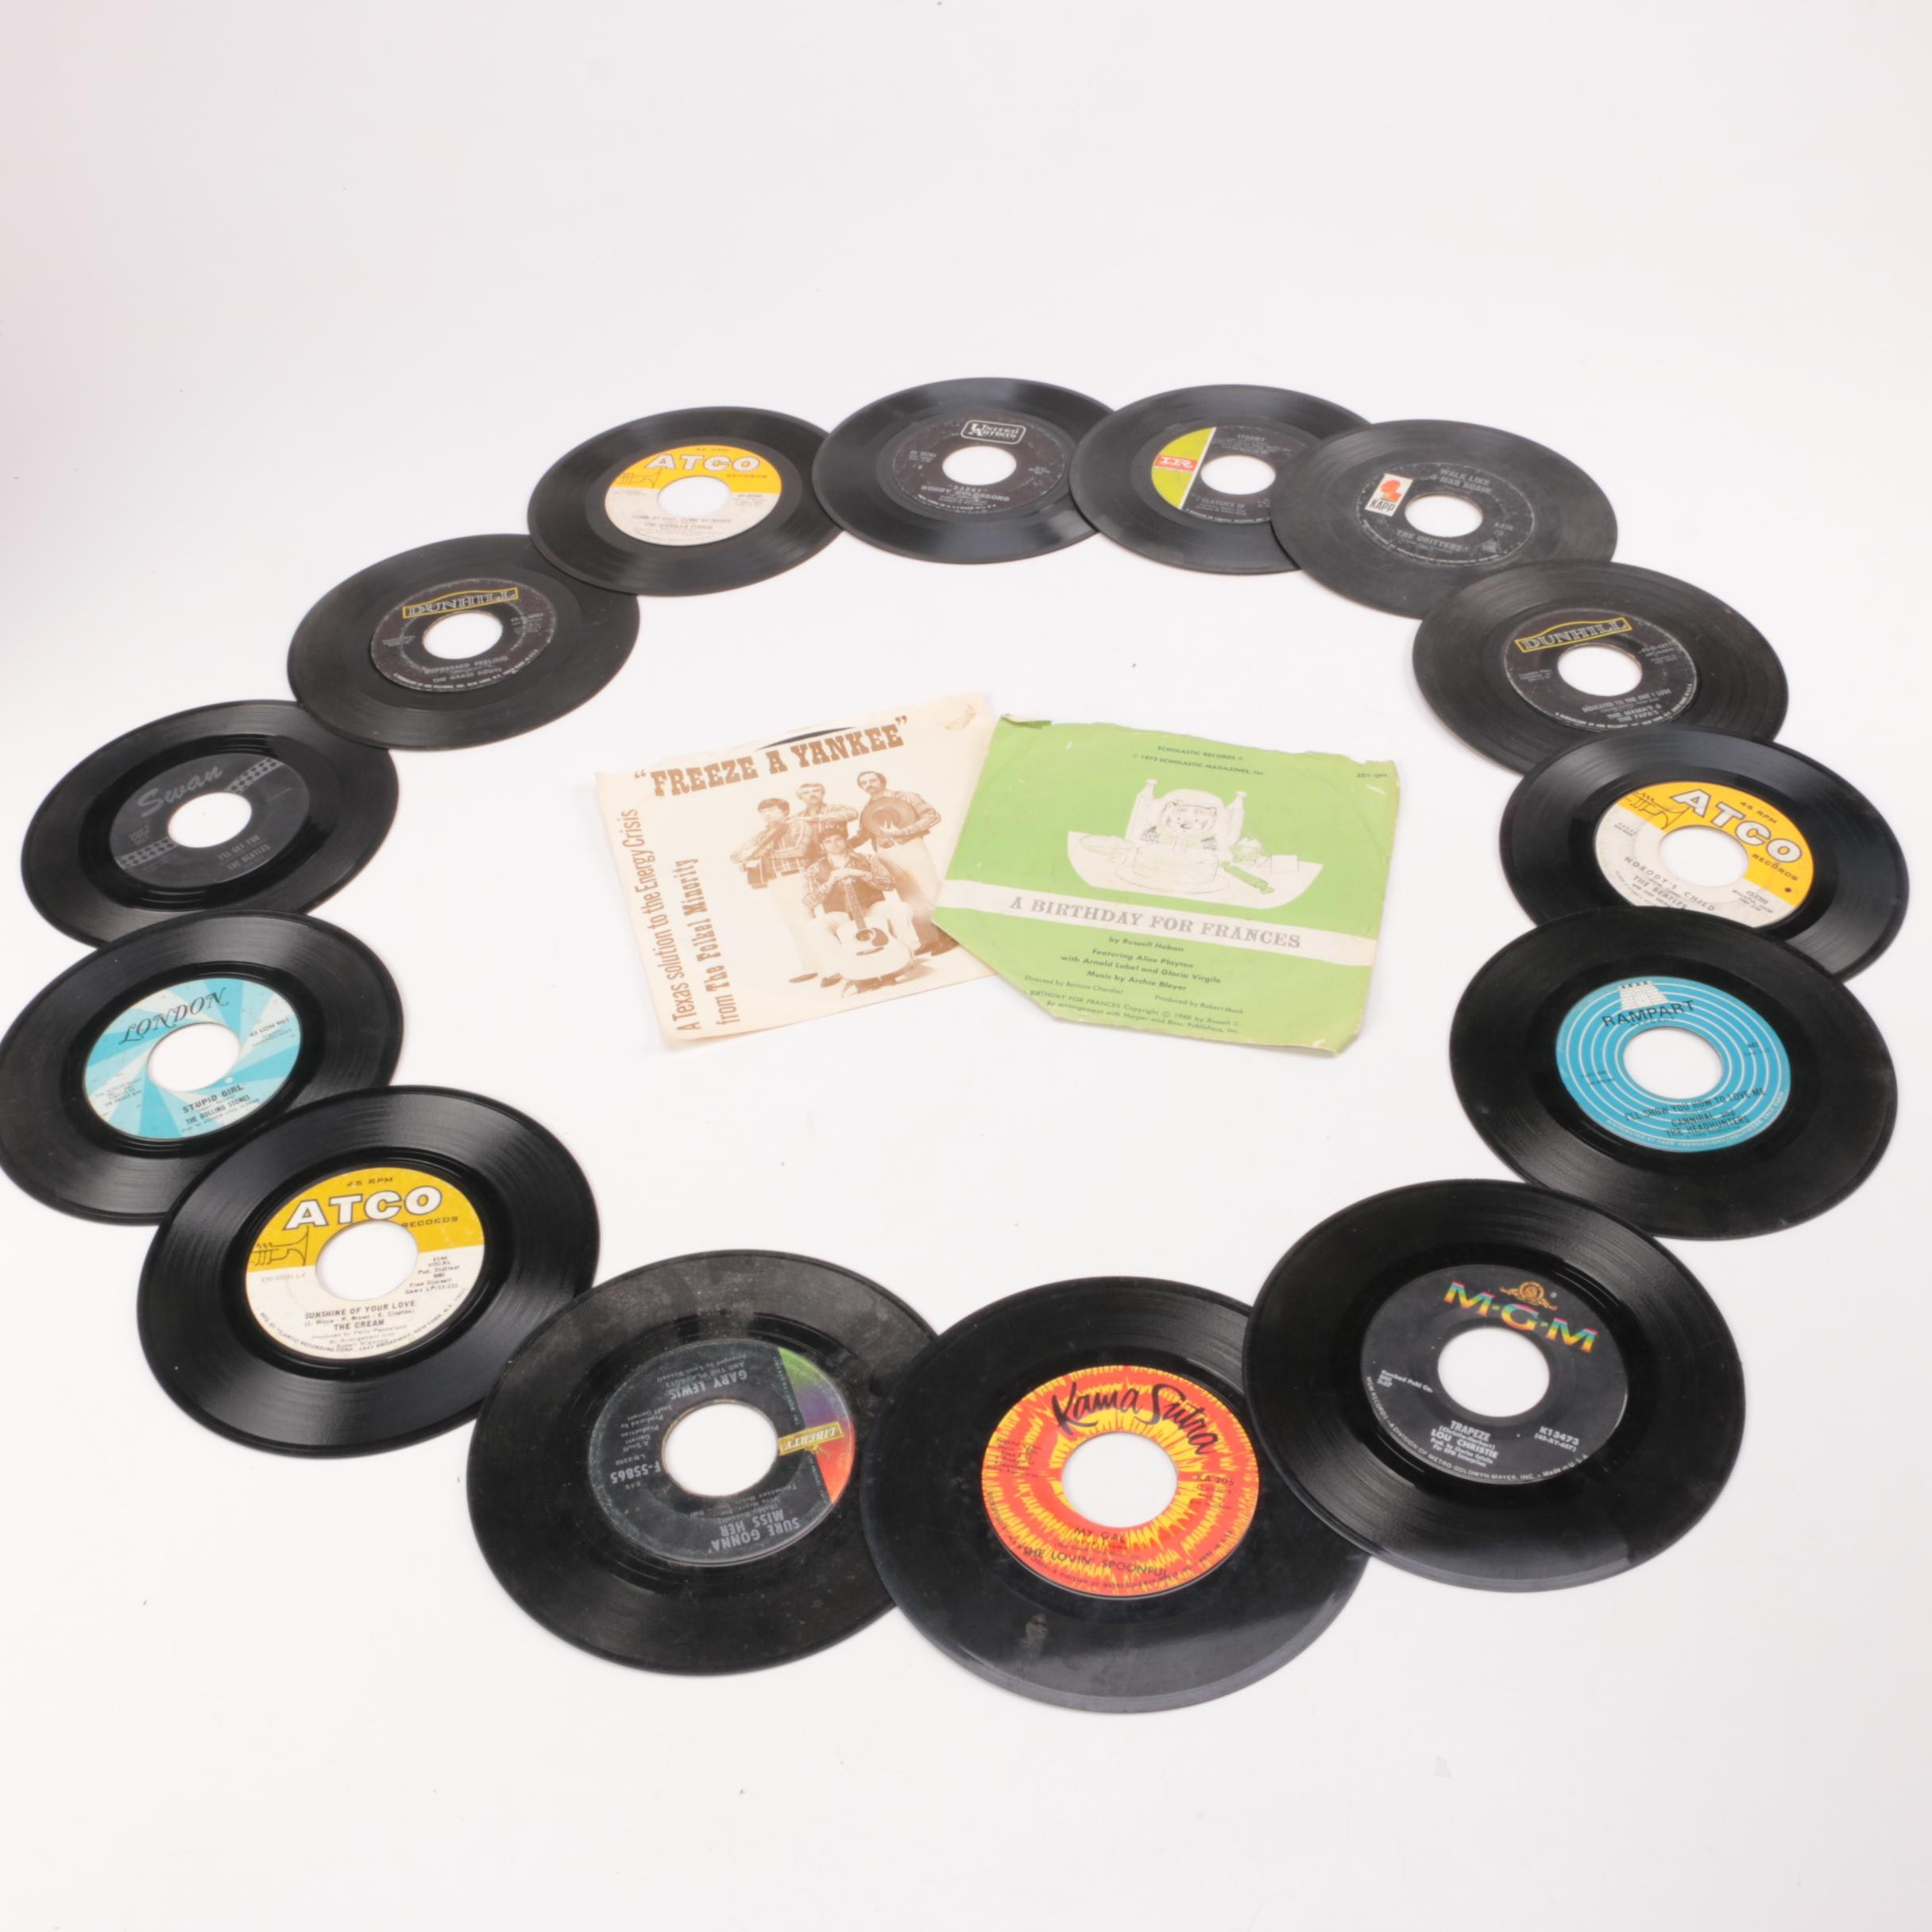 Beatles, Rolling Stones and Other Rock/Pop Singles